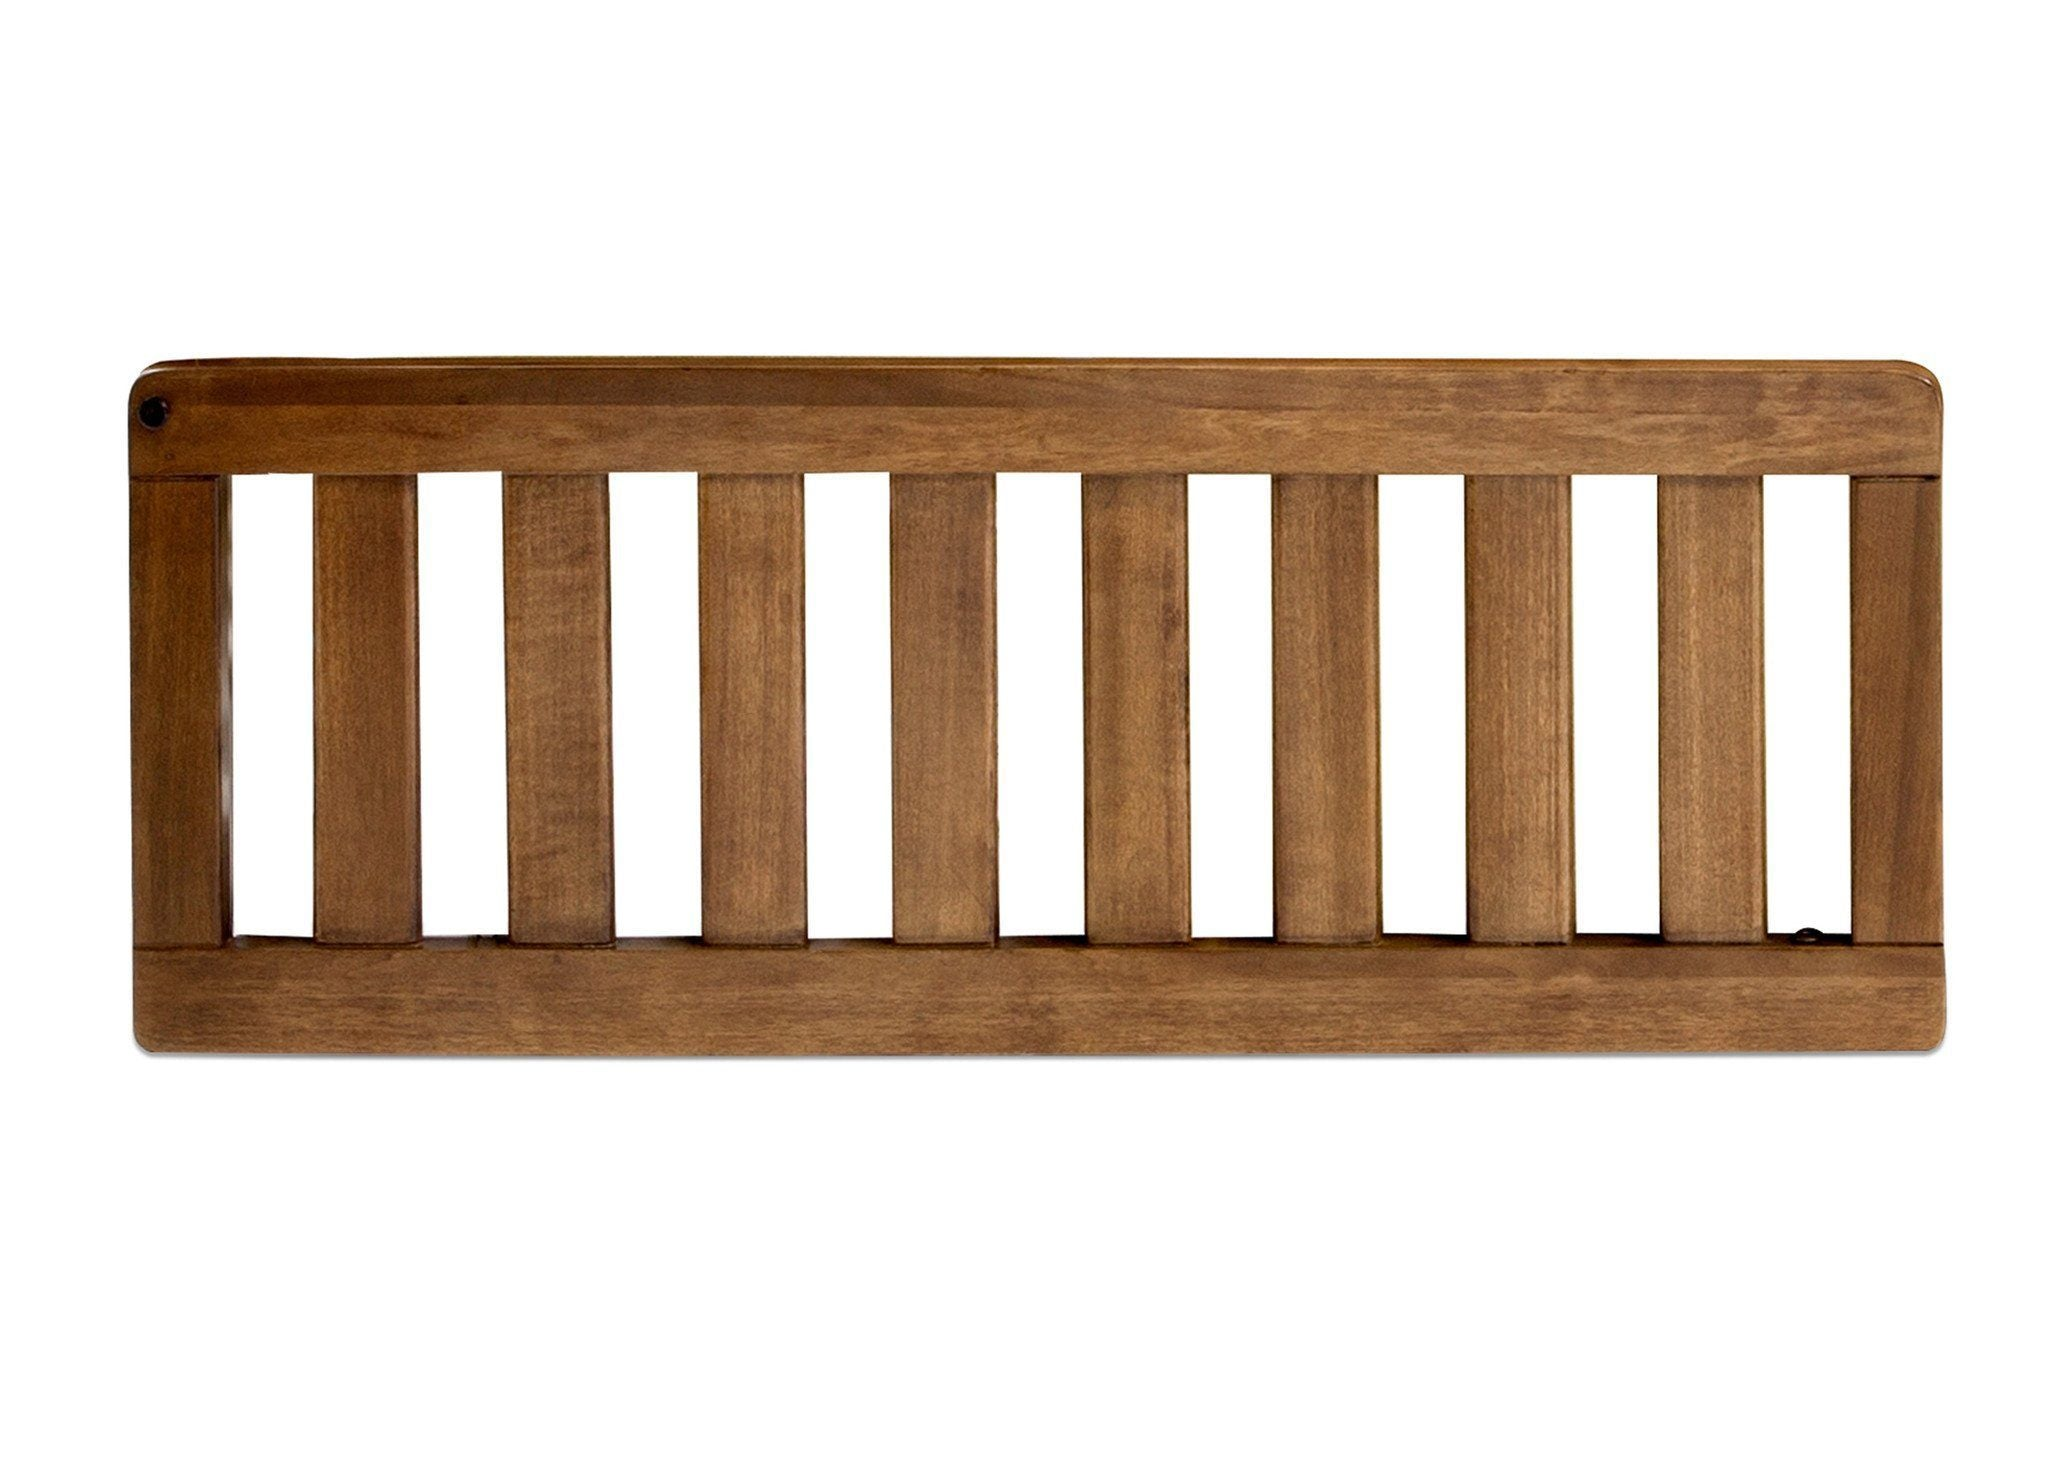 Simmons Kids Weathered Chestnut (223) Toddler Guardrail (324725), Front View a2a